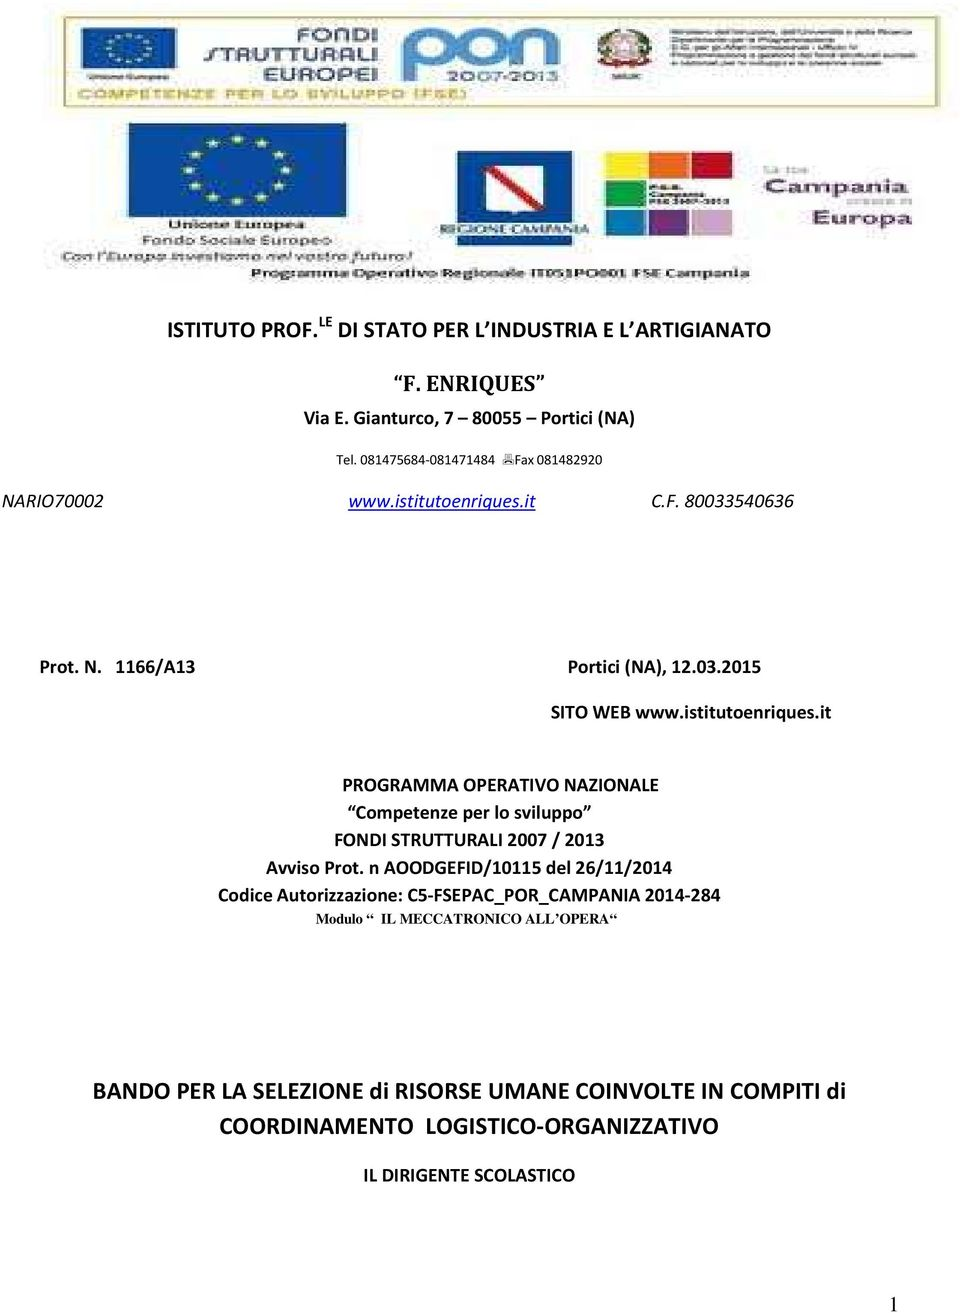 it C.F. 80033540636 Prot. N. 1166/A13 Portici (NA), 12.03.2015 SITO WEB www.istitutoenriques.